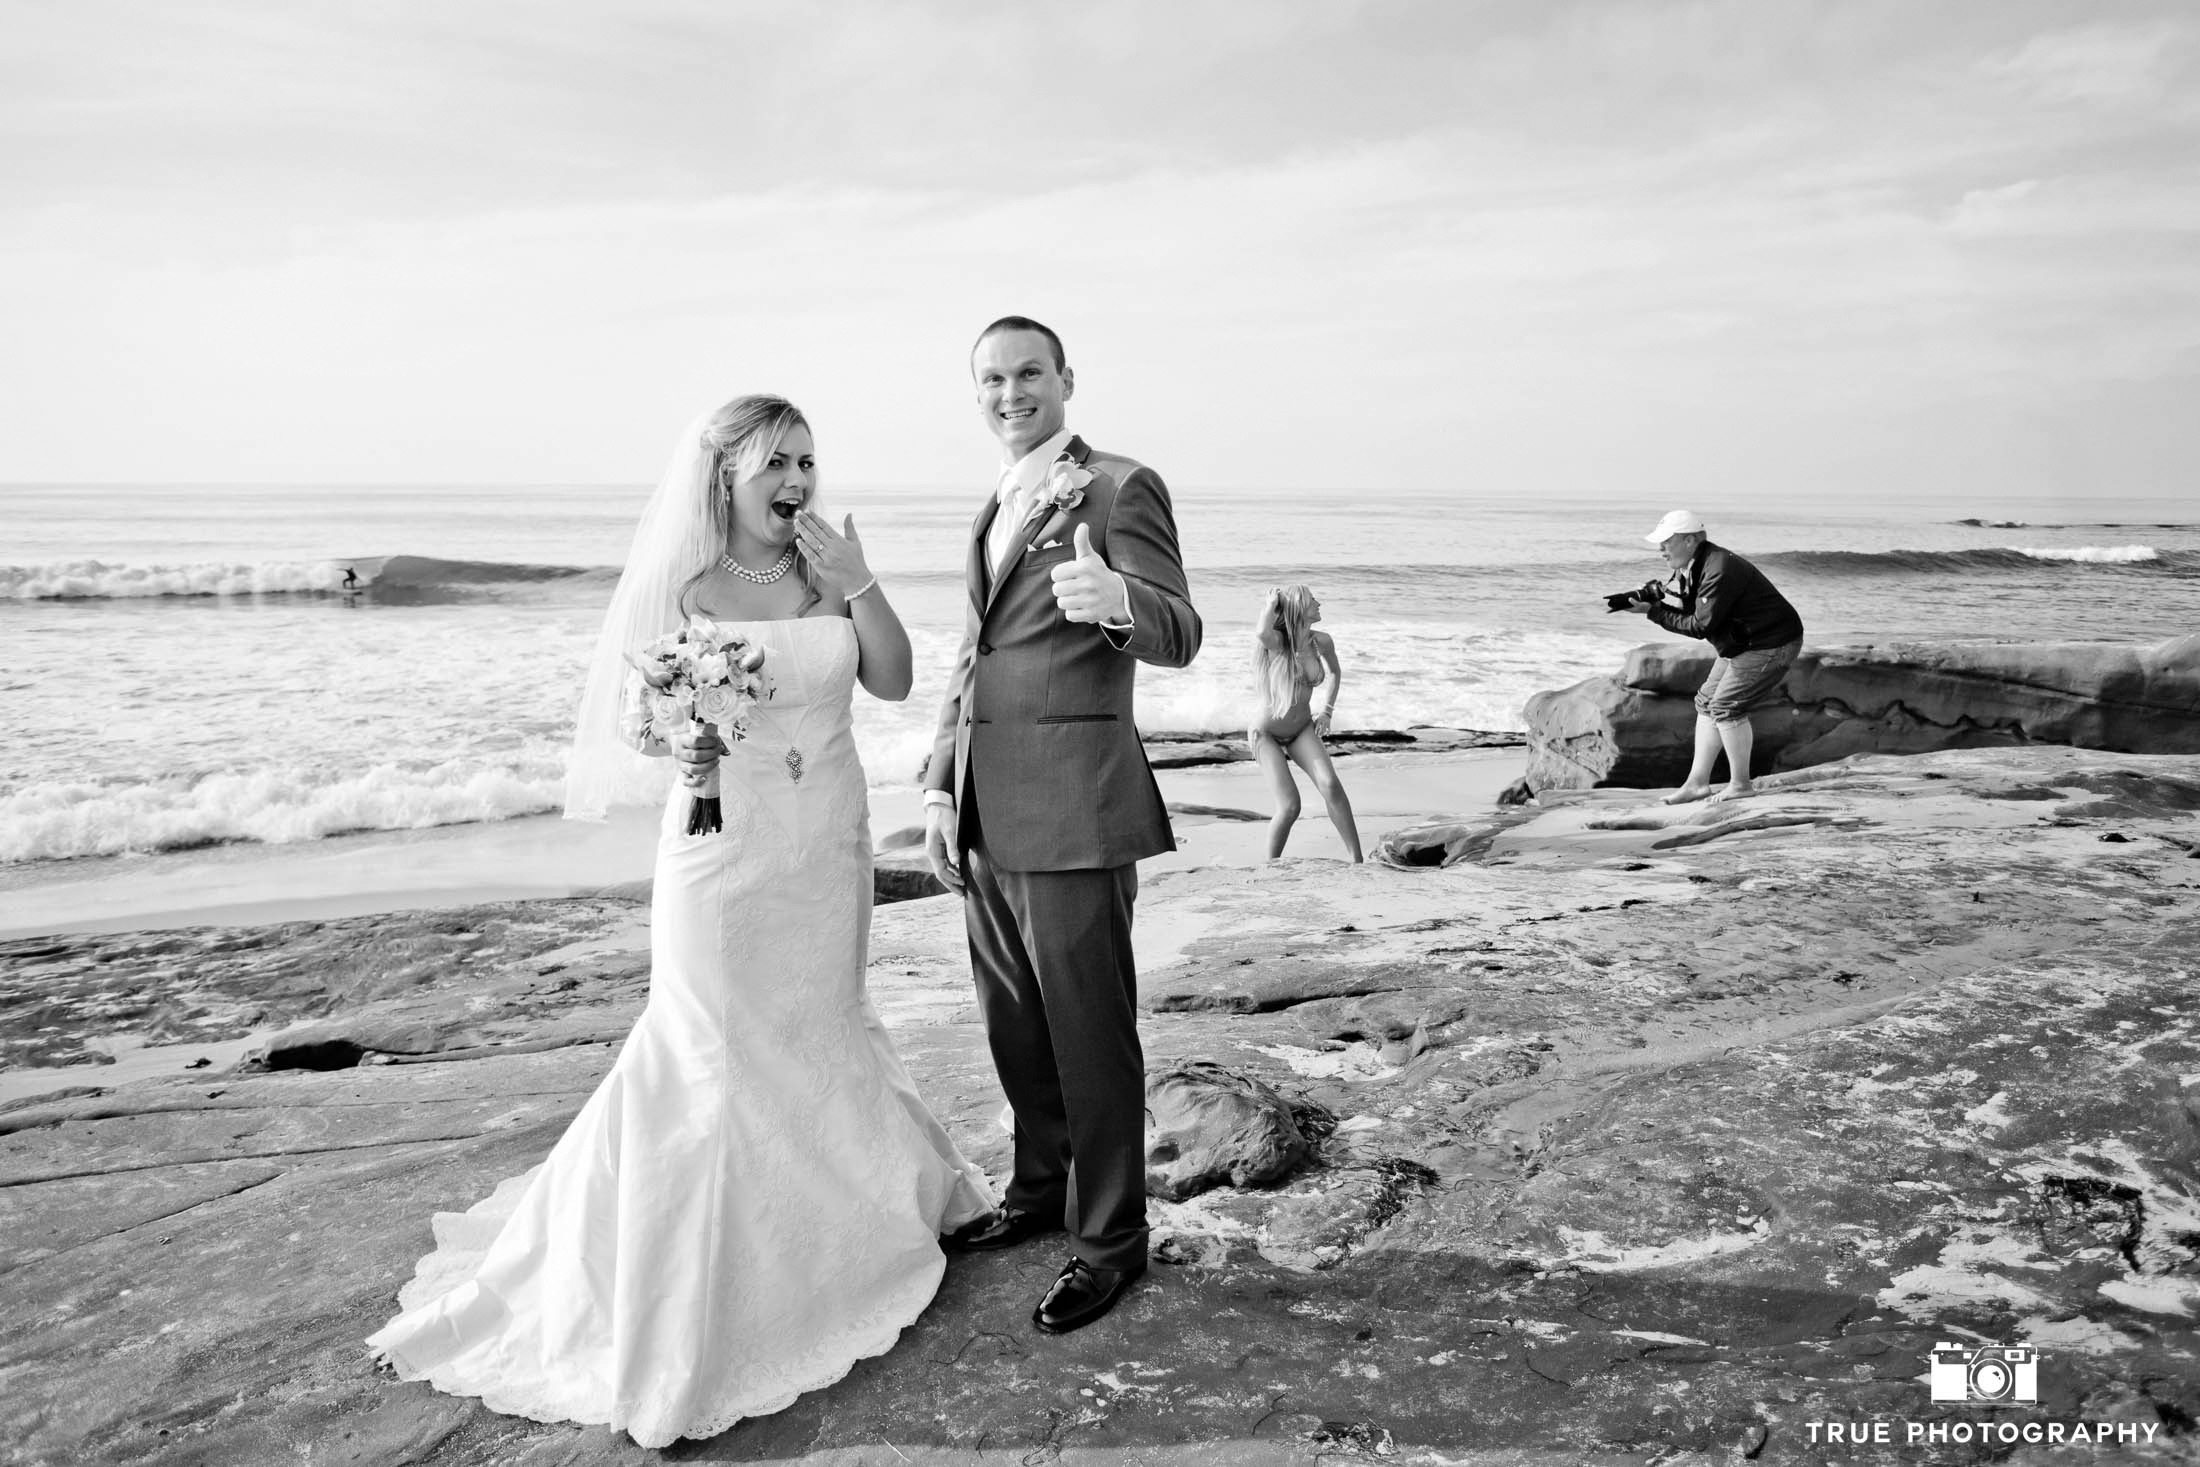 Bride and Groom make funny faces at beach as photographer take photos of model in background